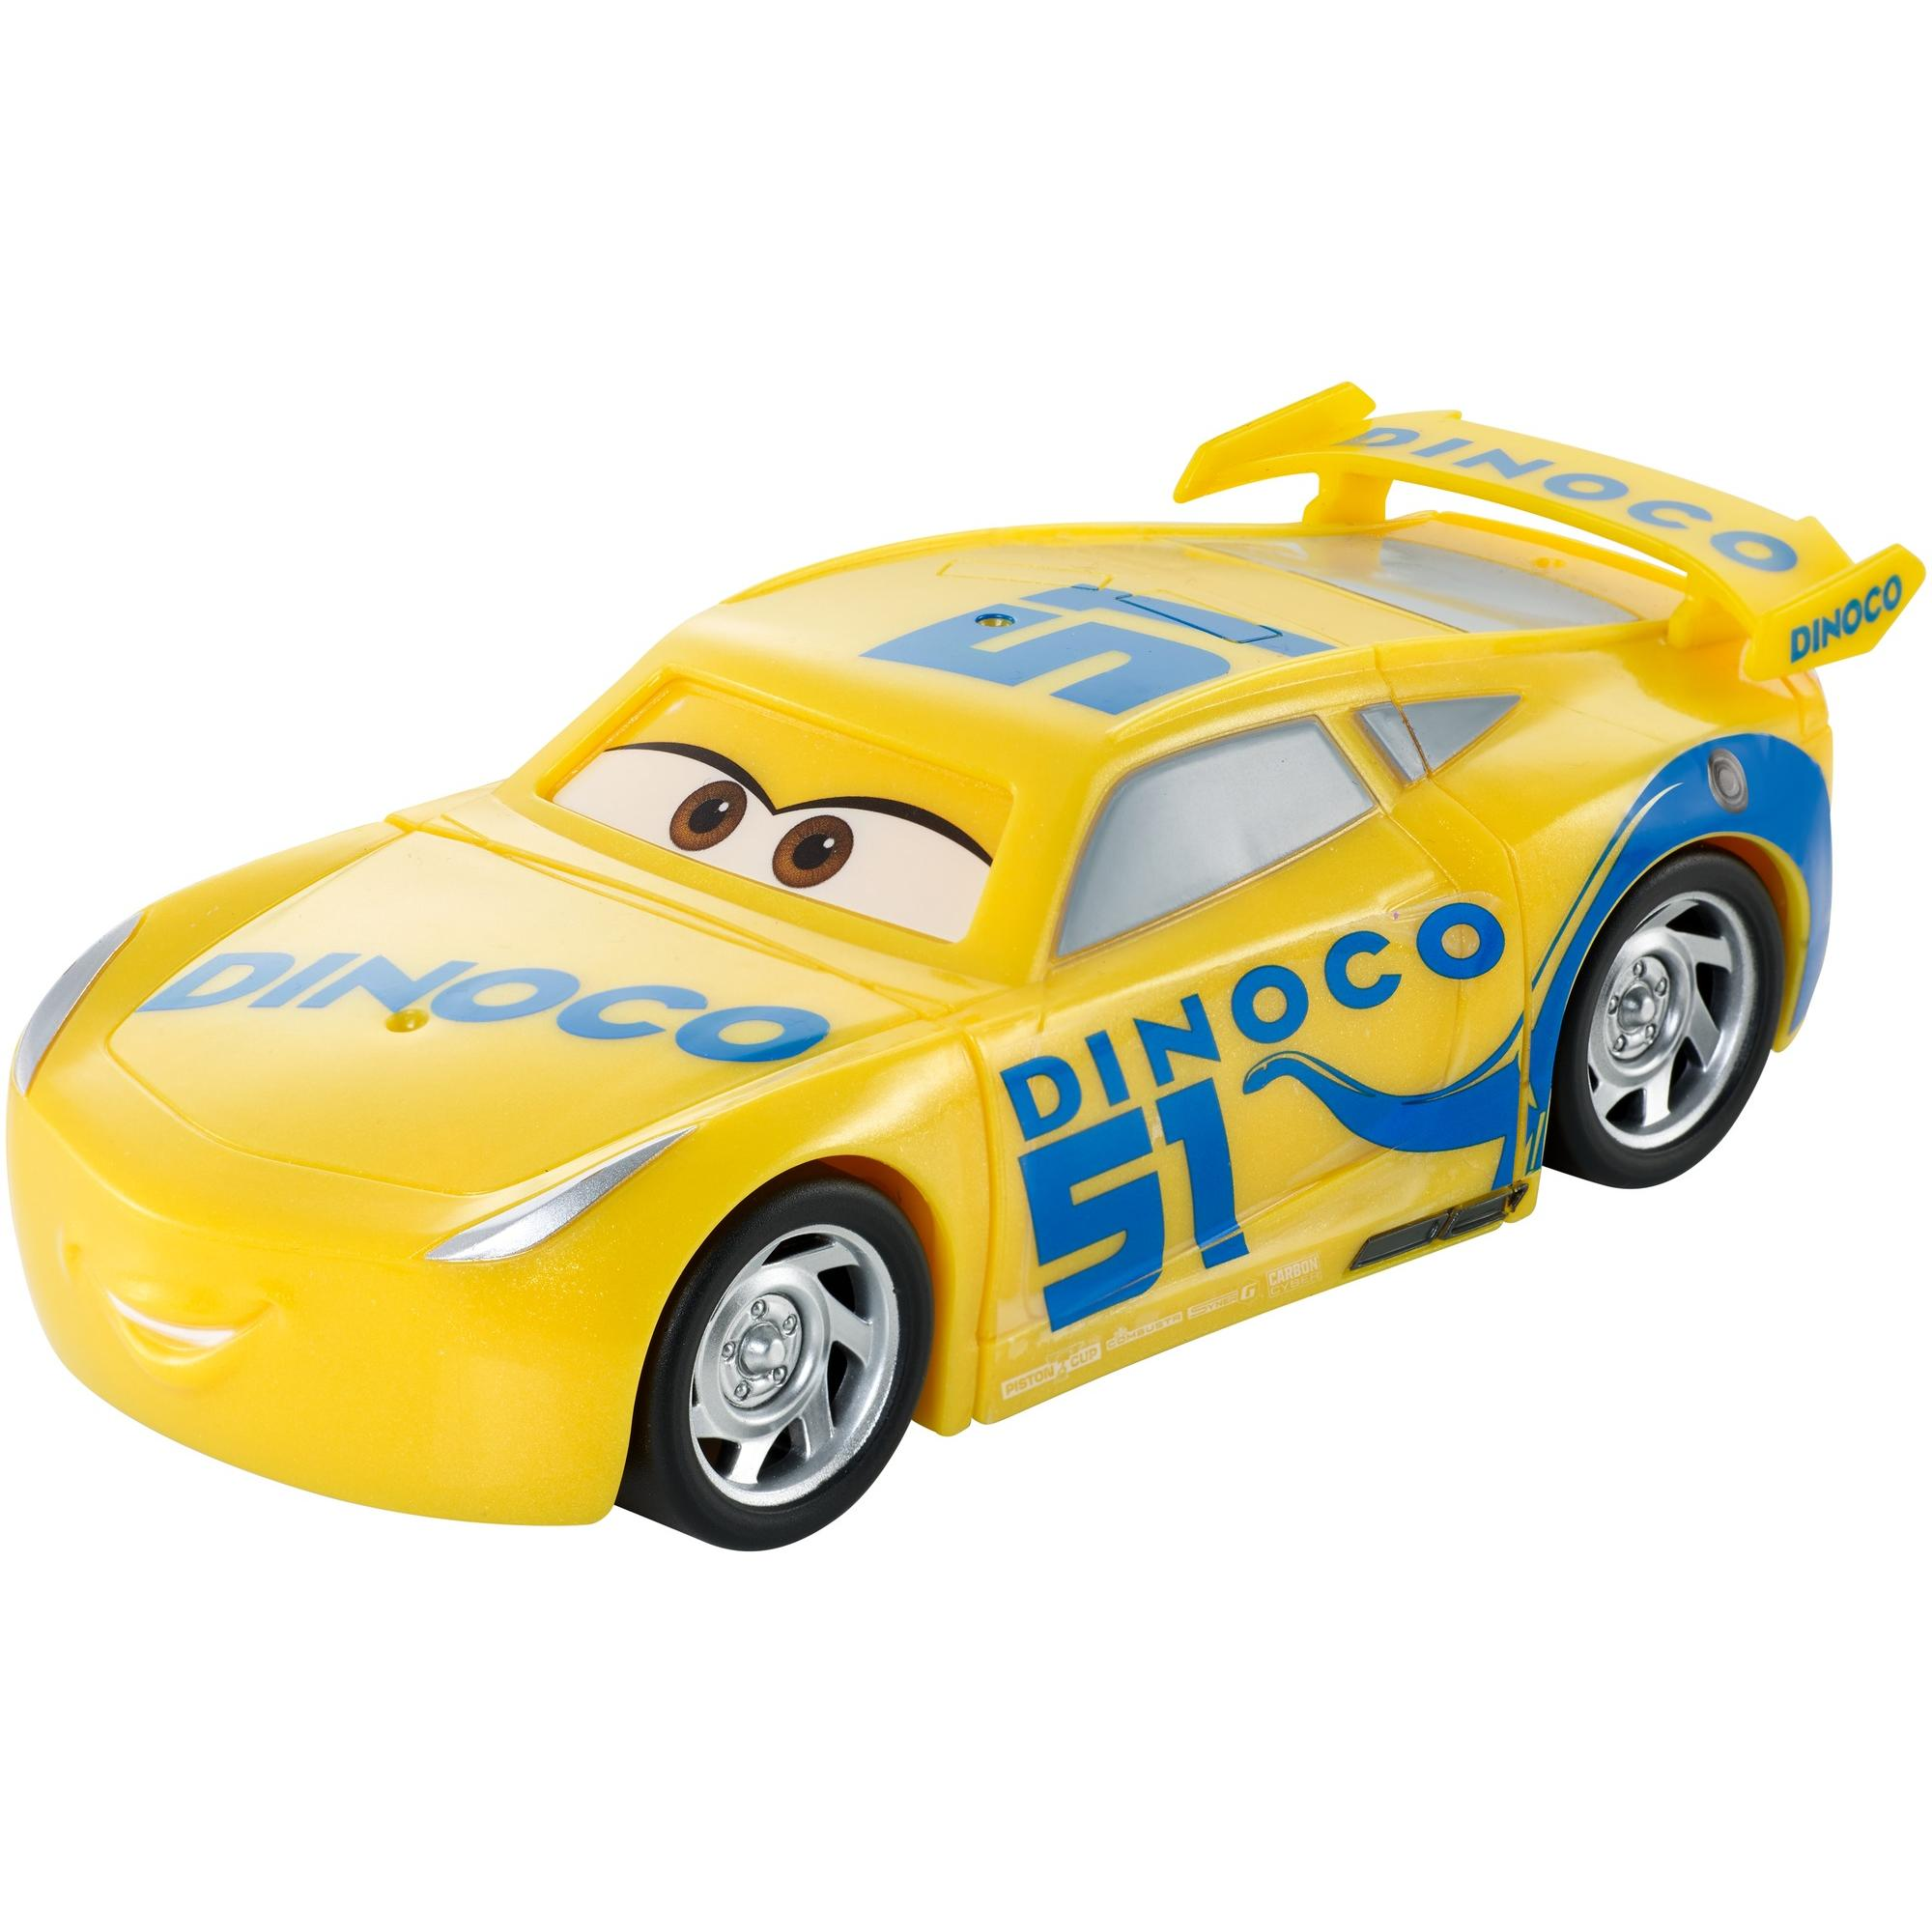 Disney/Pixar Cars 3 Race & Reck' Dinoco Cruz Ramirez Vehicle